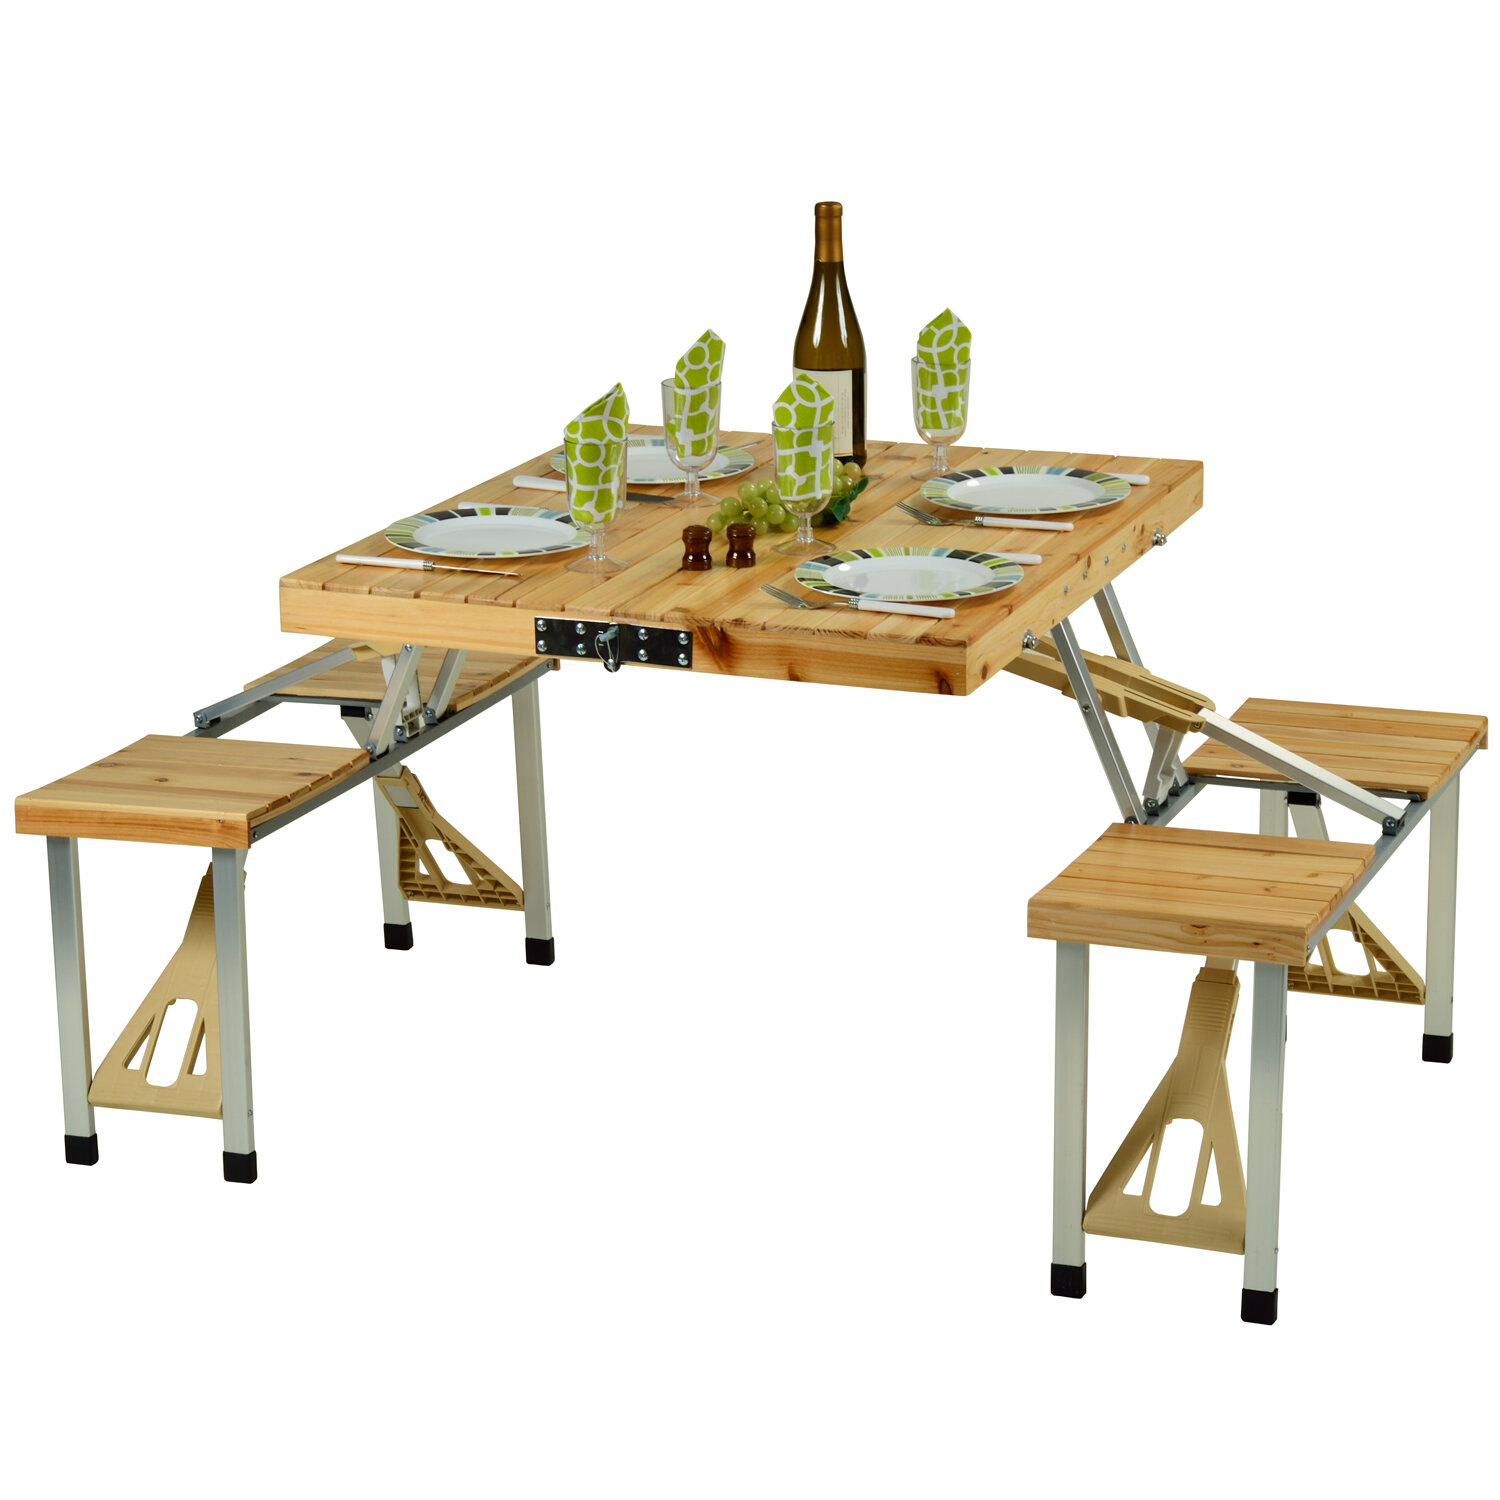 Loon Peak Throop Portable Picnic Table & Reviews